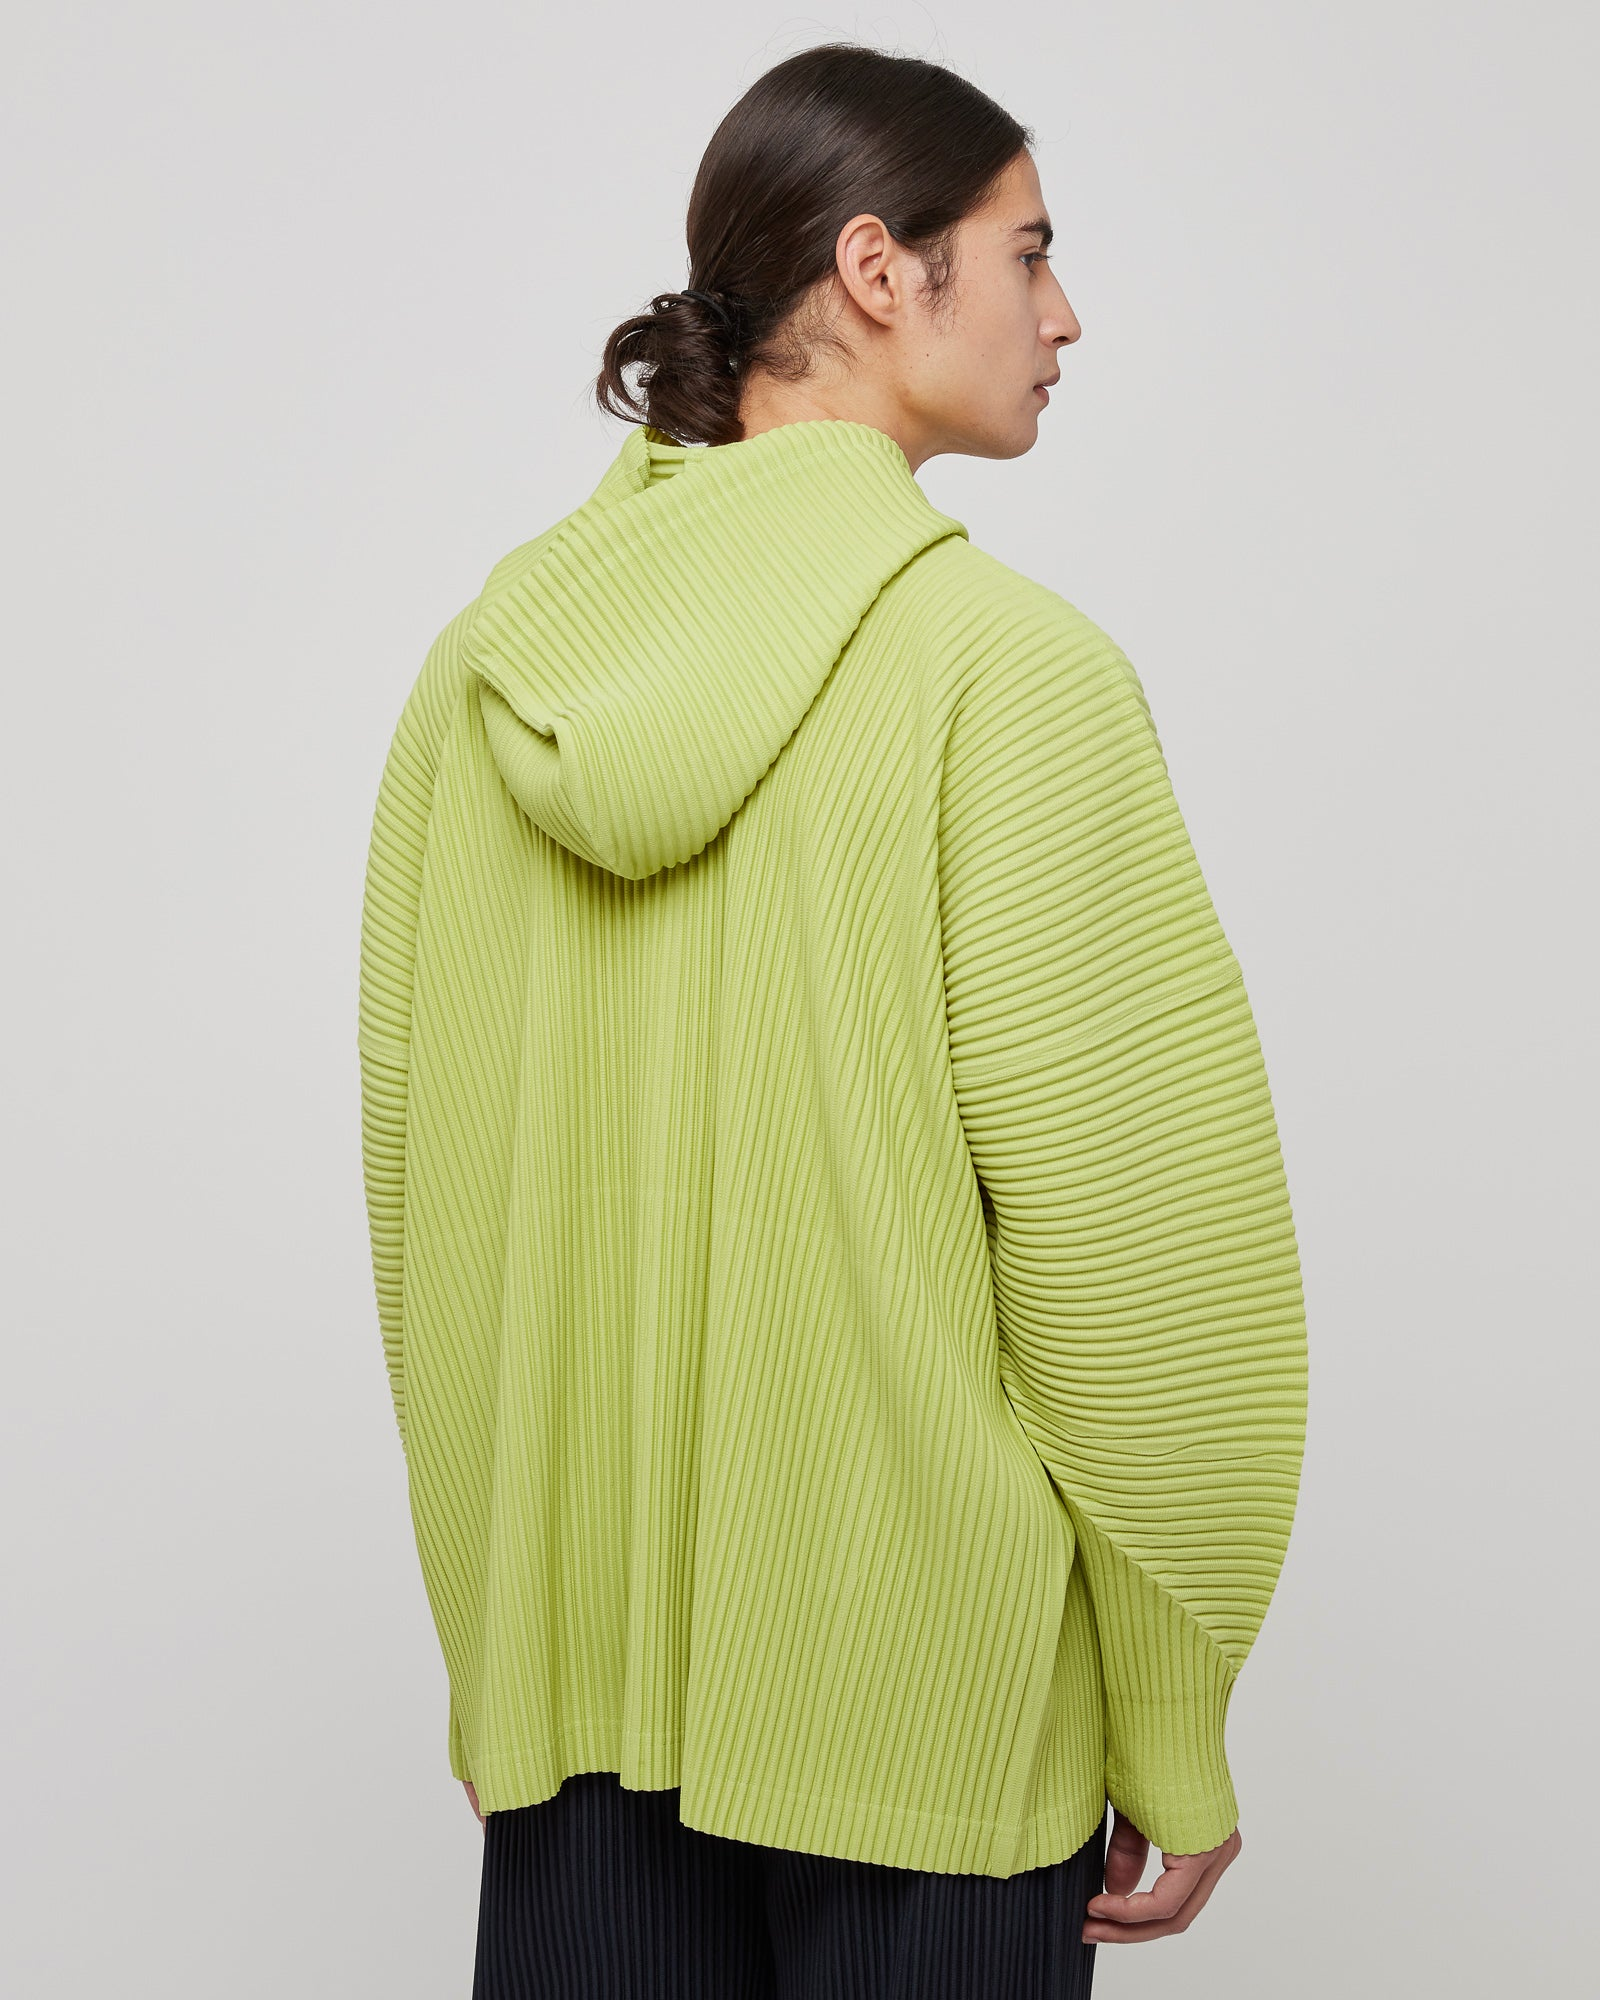 MC February Pullover in Lime Green